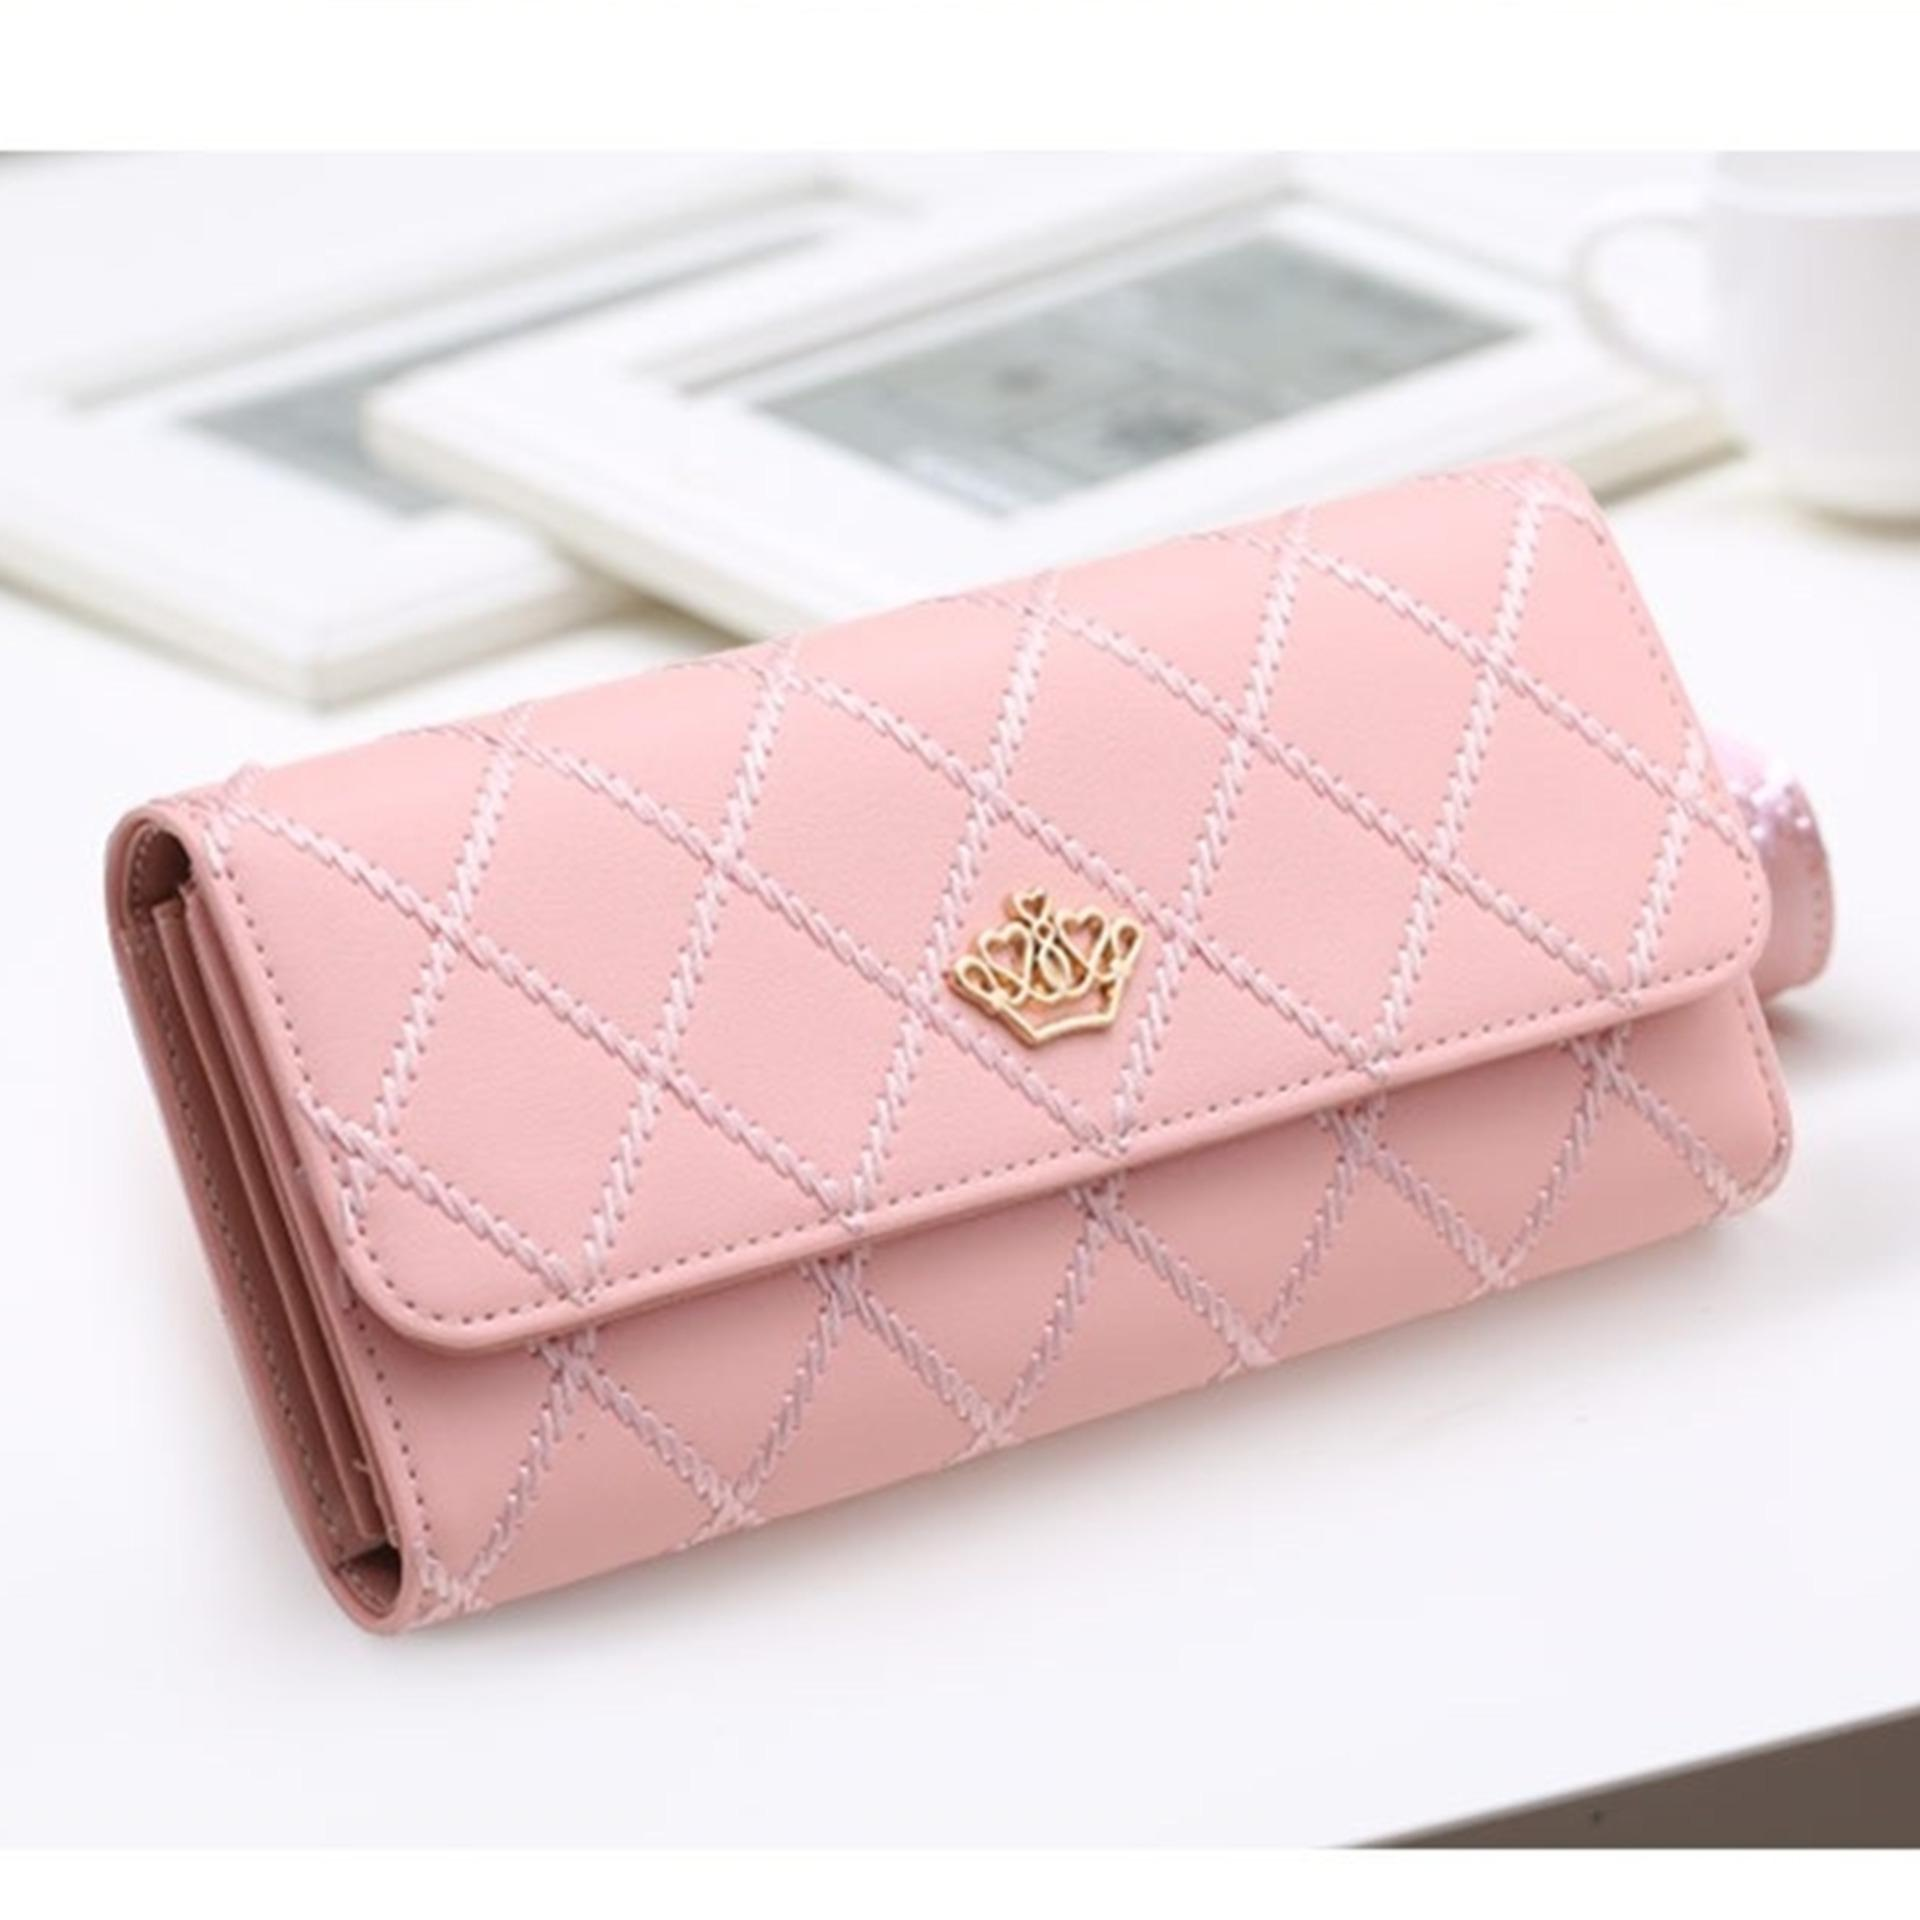 Model Jims Honey Dompet Wanita Jesslyn Wallet Softpink Terbaru